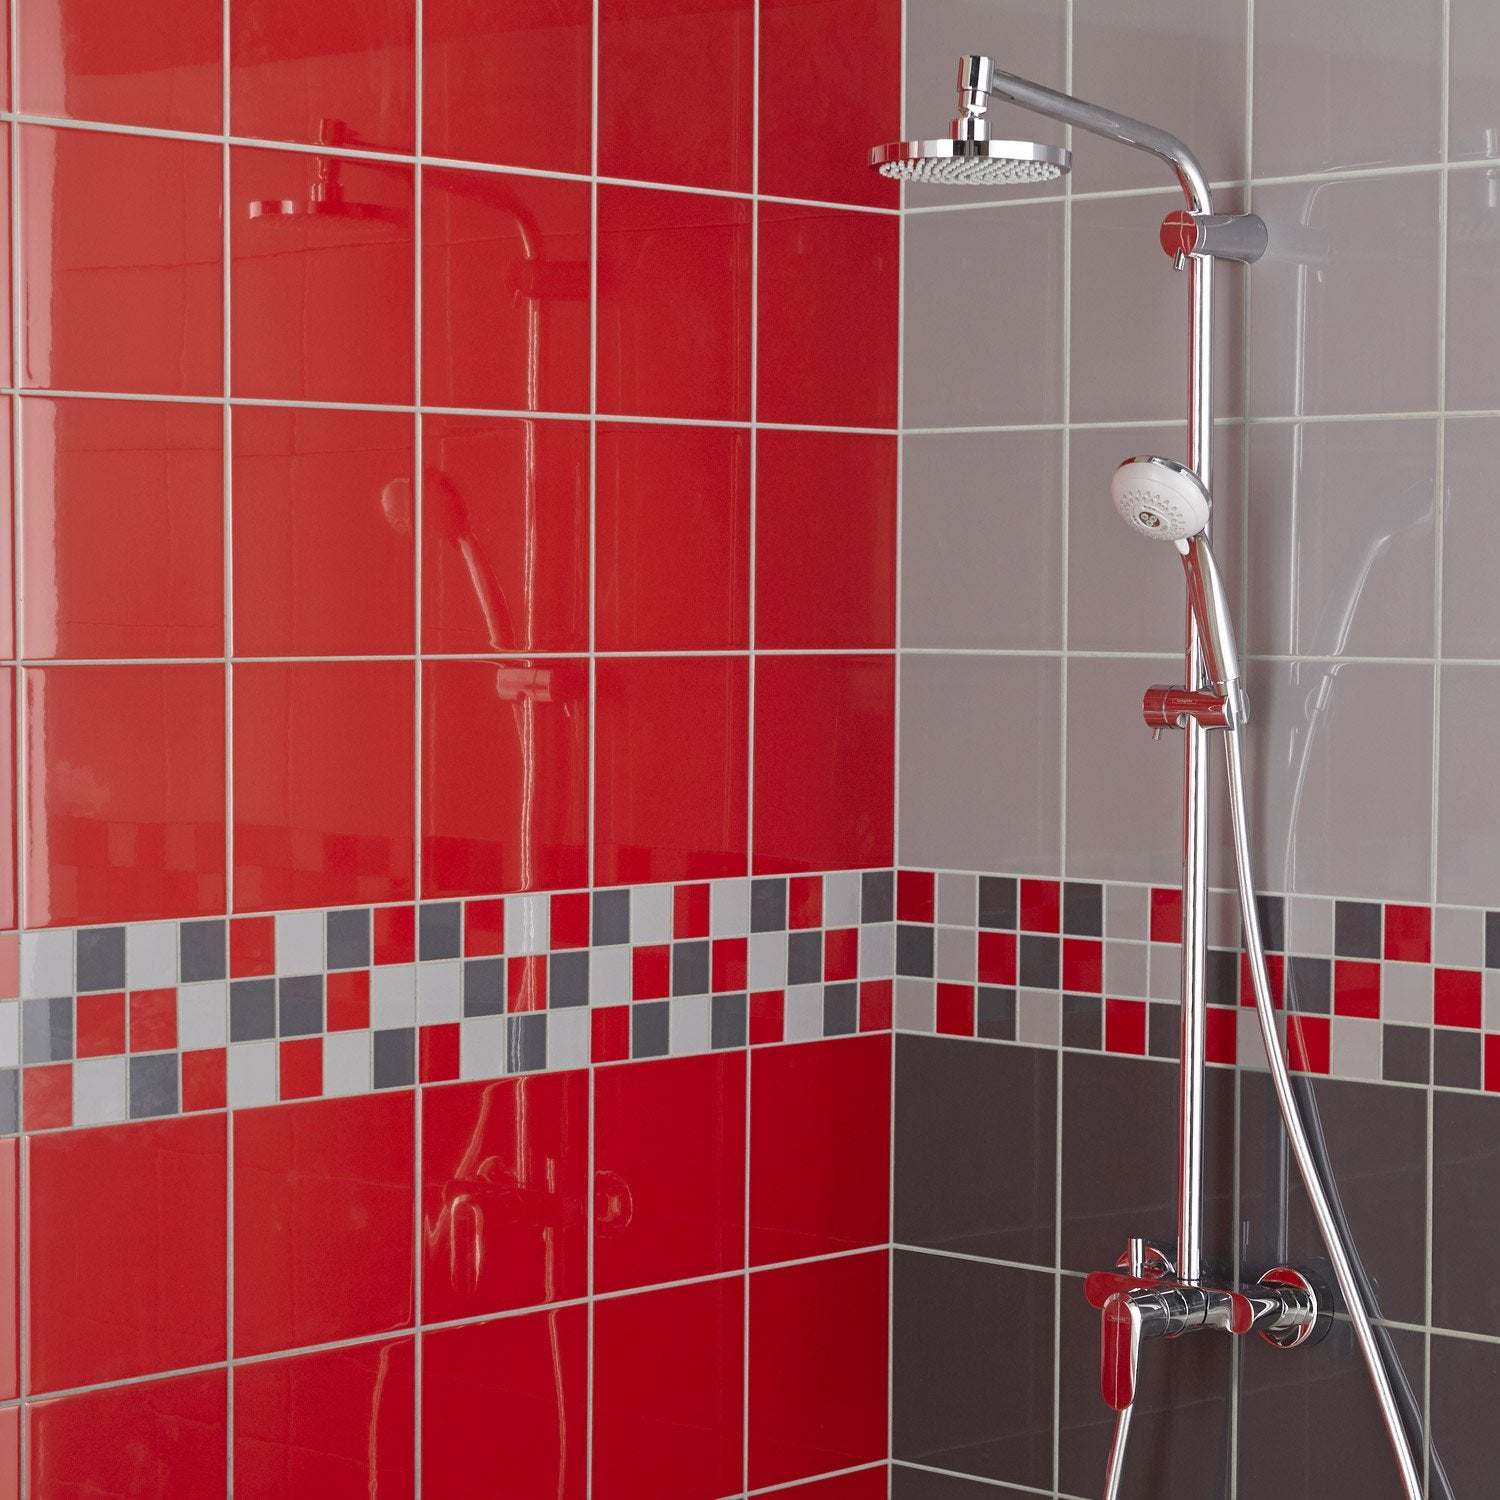 Fa ence mur rouge rouge astuce x cm leroy merlin for Salle de bain moderne rouge